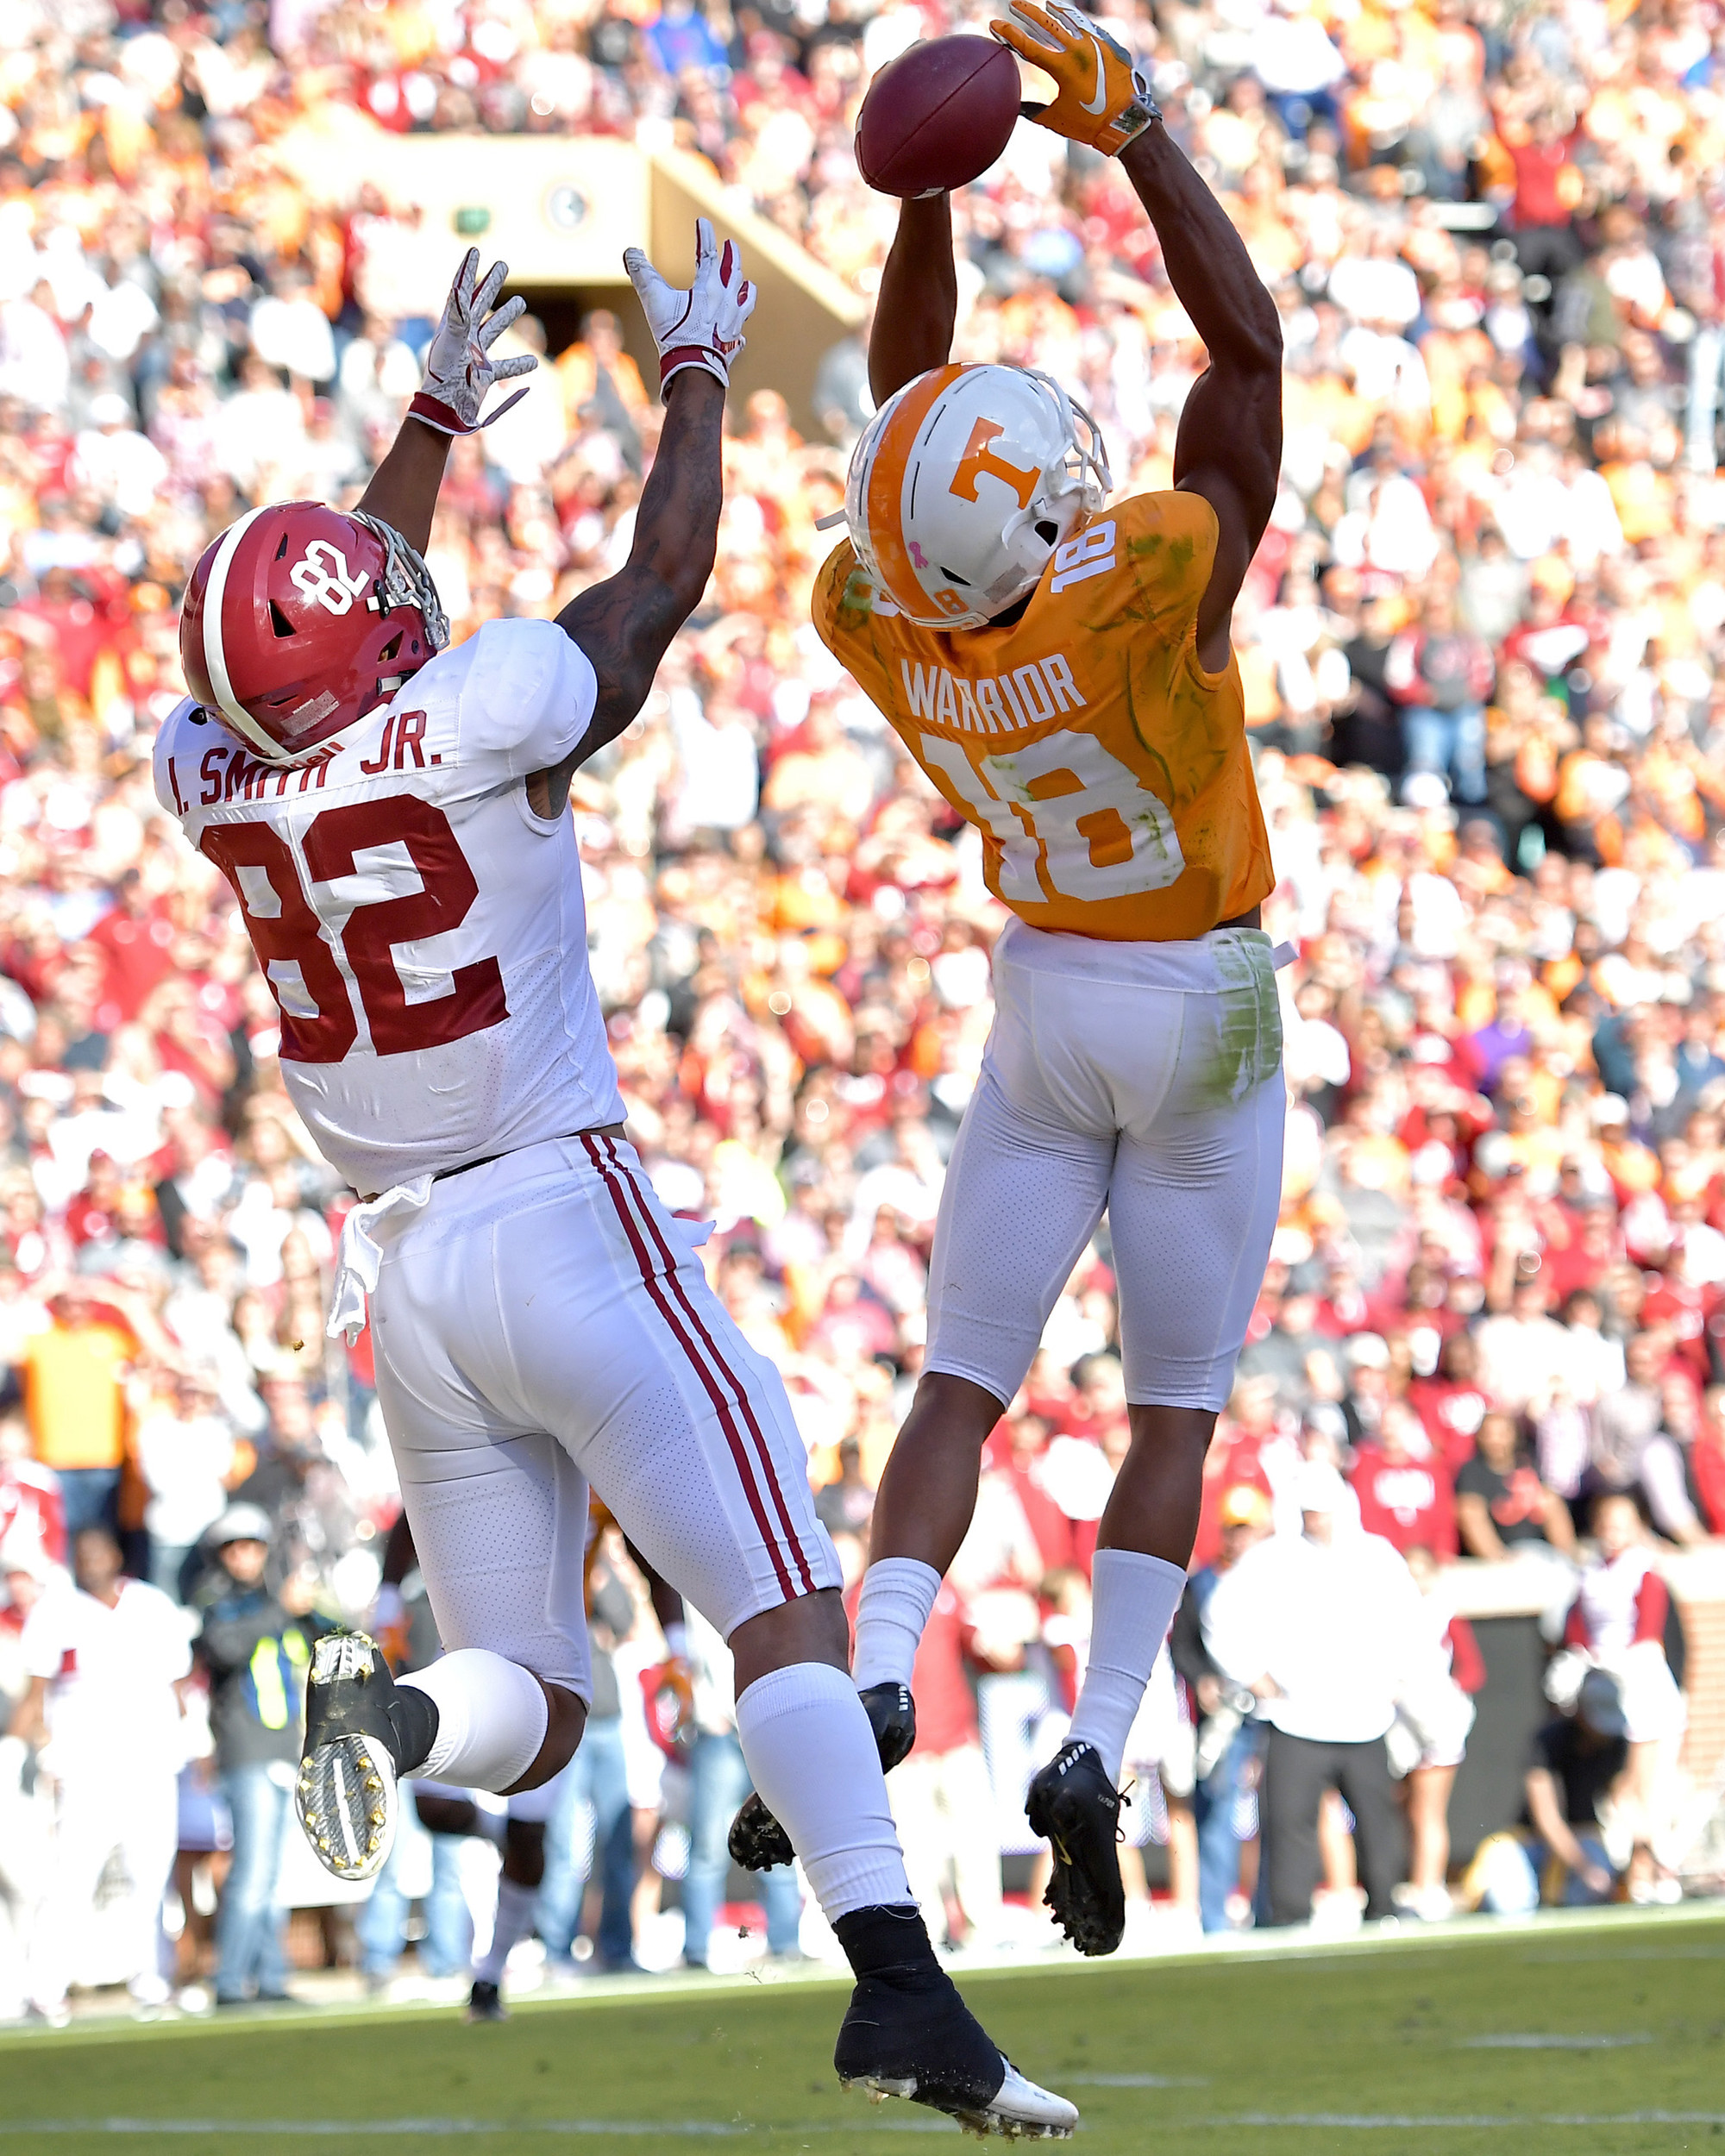 Tennessee Volunteers defensive back Nigel Warrior (18) comes close to intercepting a pass intended for Alabama Crimson Tide tight end Irv Smith Jr. (82) in the first half of the NCAA football game on Saturday, Oct. 20, 2018, at Neyland Stadium in Knoxville. Tenn. Alabama wins 58-21. (Photo by Lee Walls)